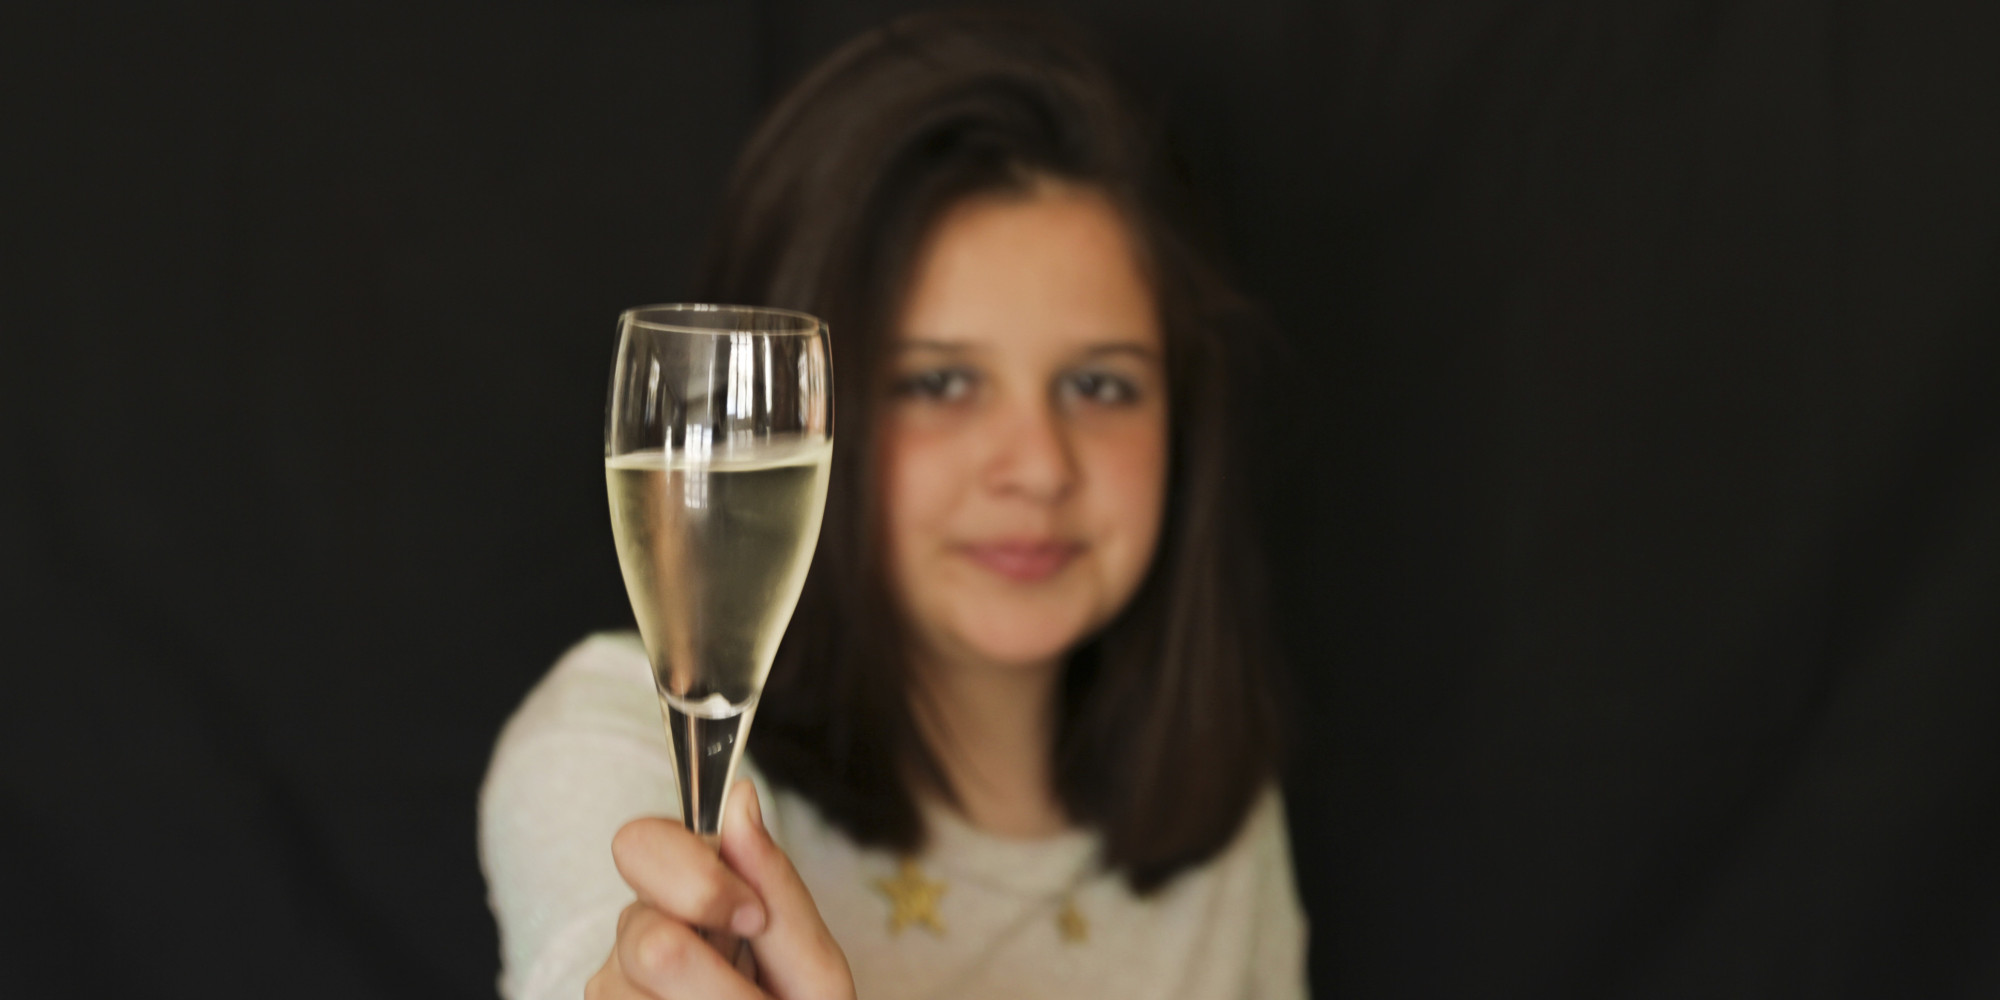 an analysis of teenage drinking Underage drinking underage drinkers drink to look cool and it may be the social thing to do at the latest party or even at home feeling curious a teen may consume.